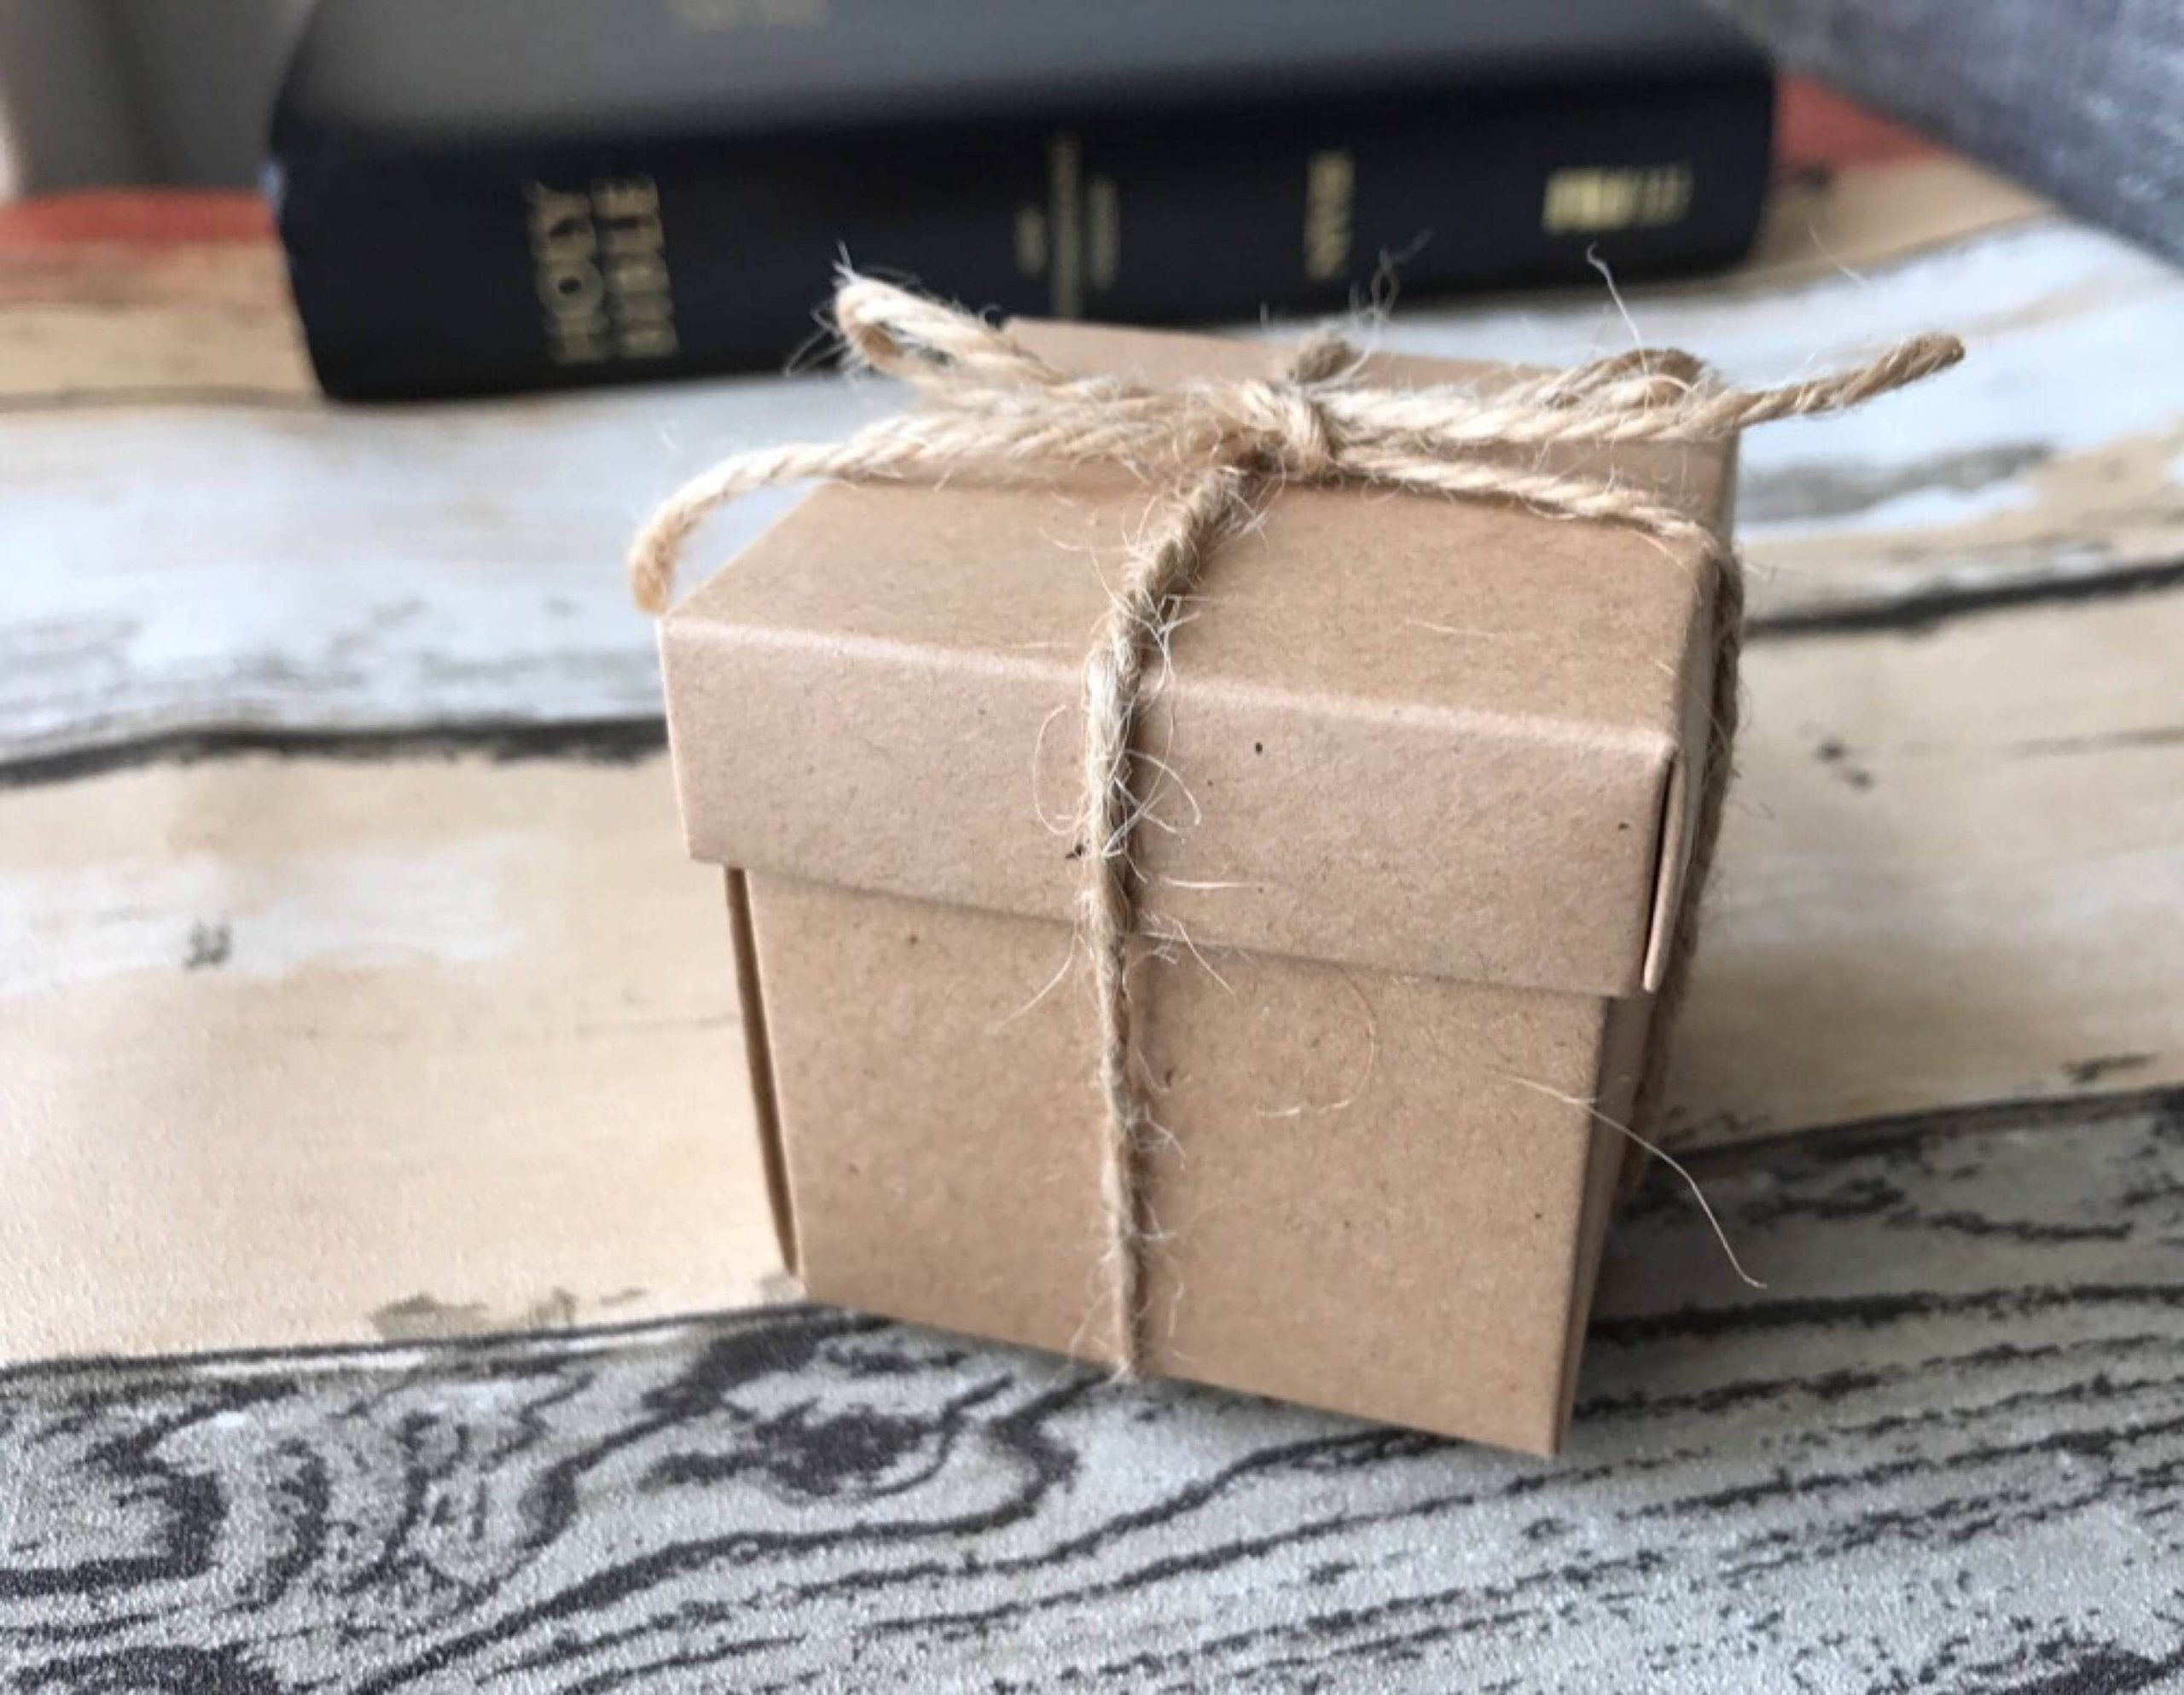 50x Natural Kraft Paper Boxes | Bomboniere Favour Box Wedding & Party Gift For Chocolate Cookies Candy Size 5cm/2Inch